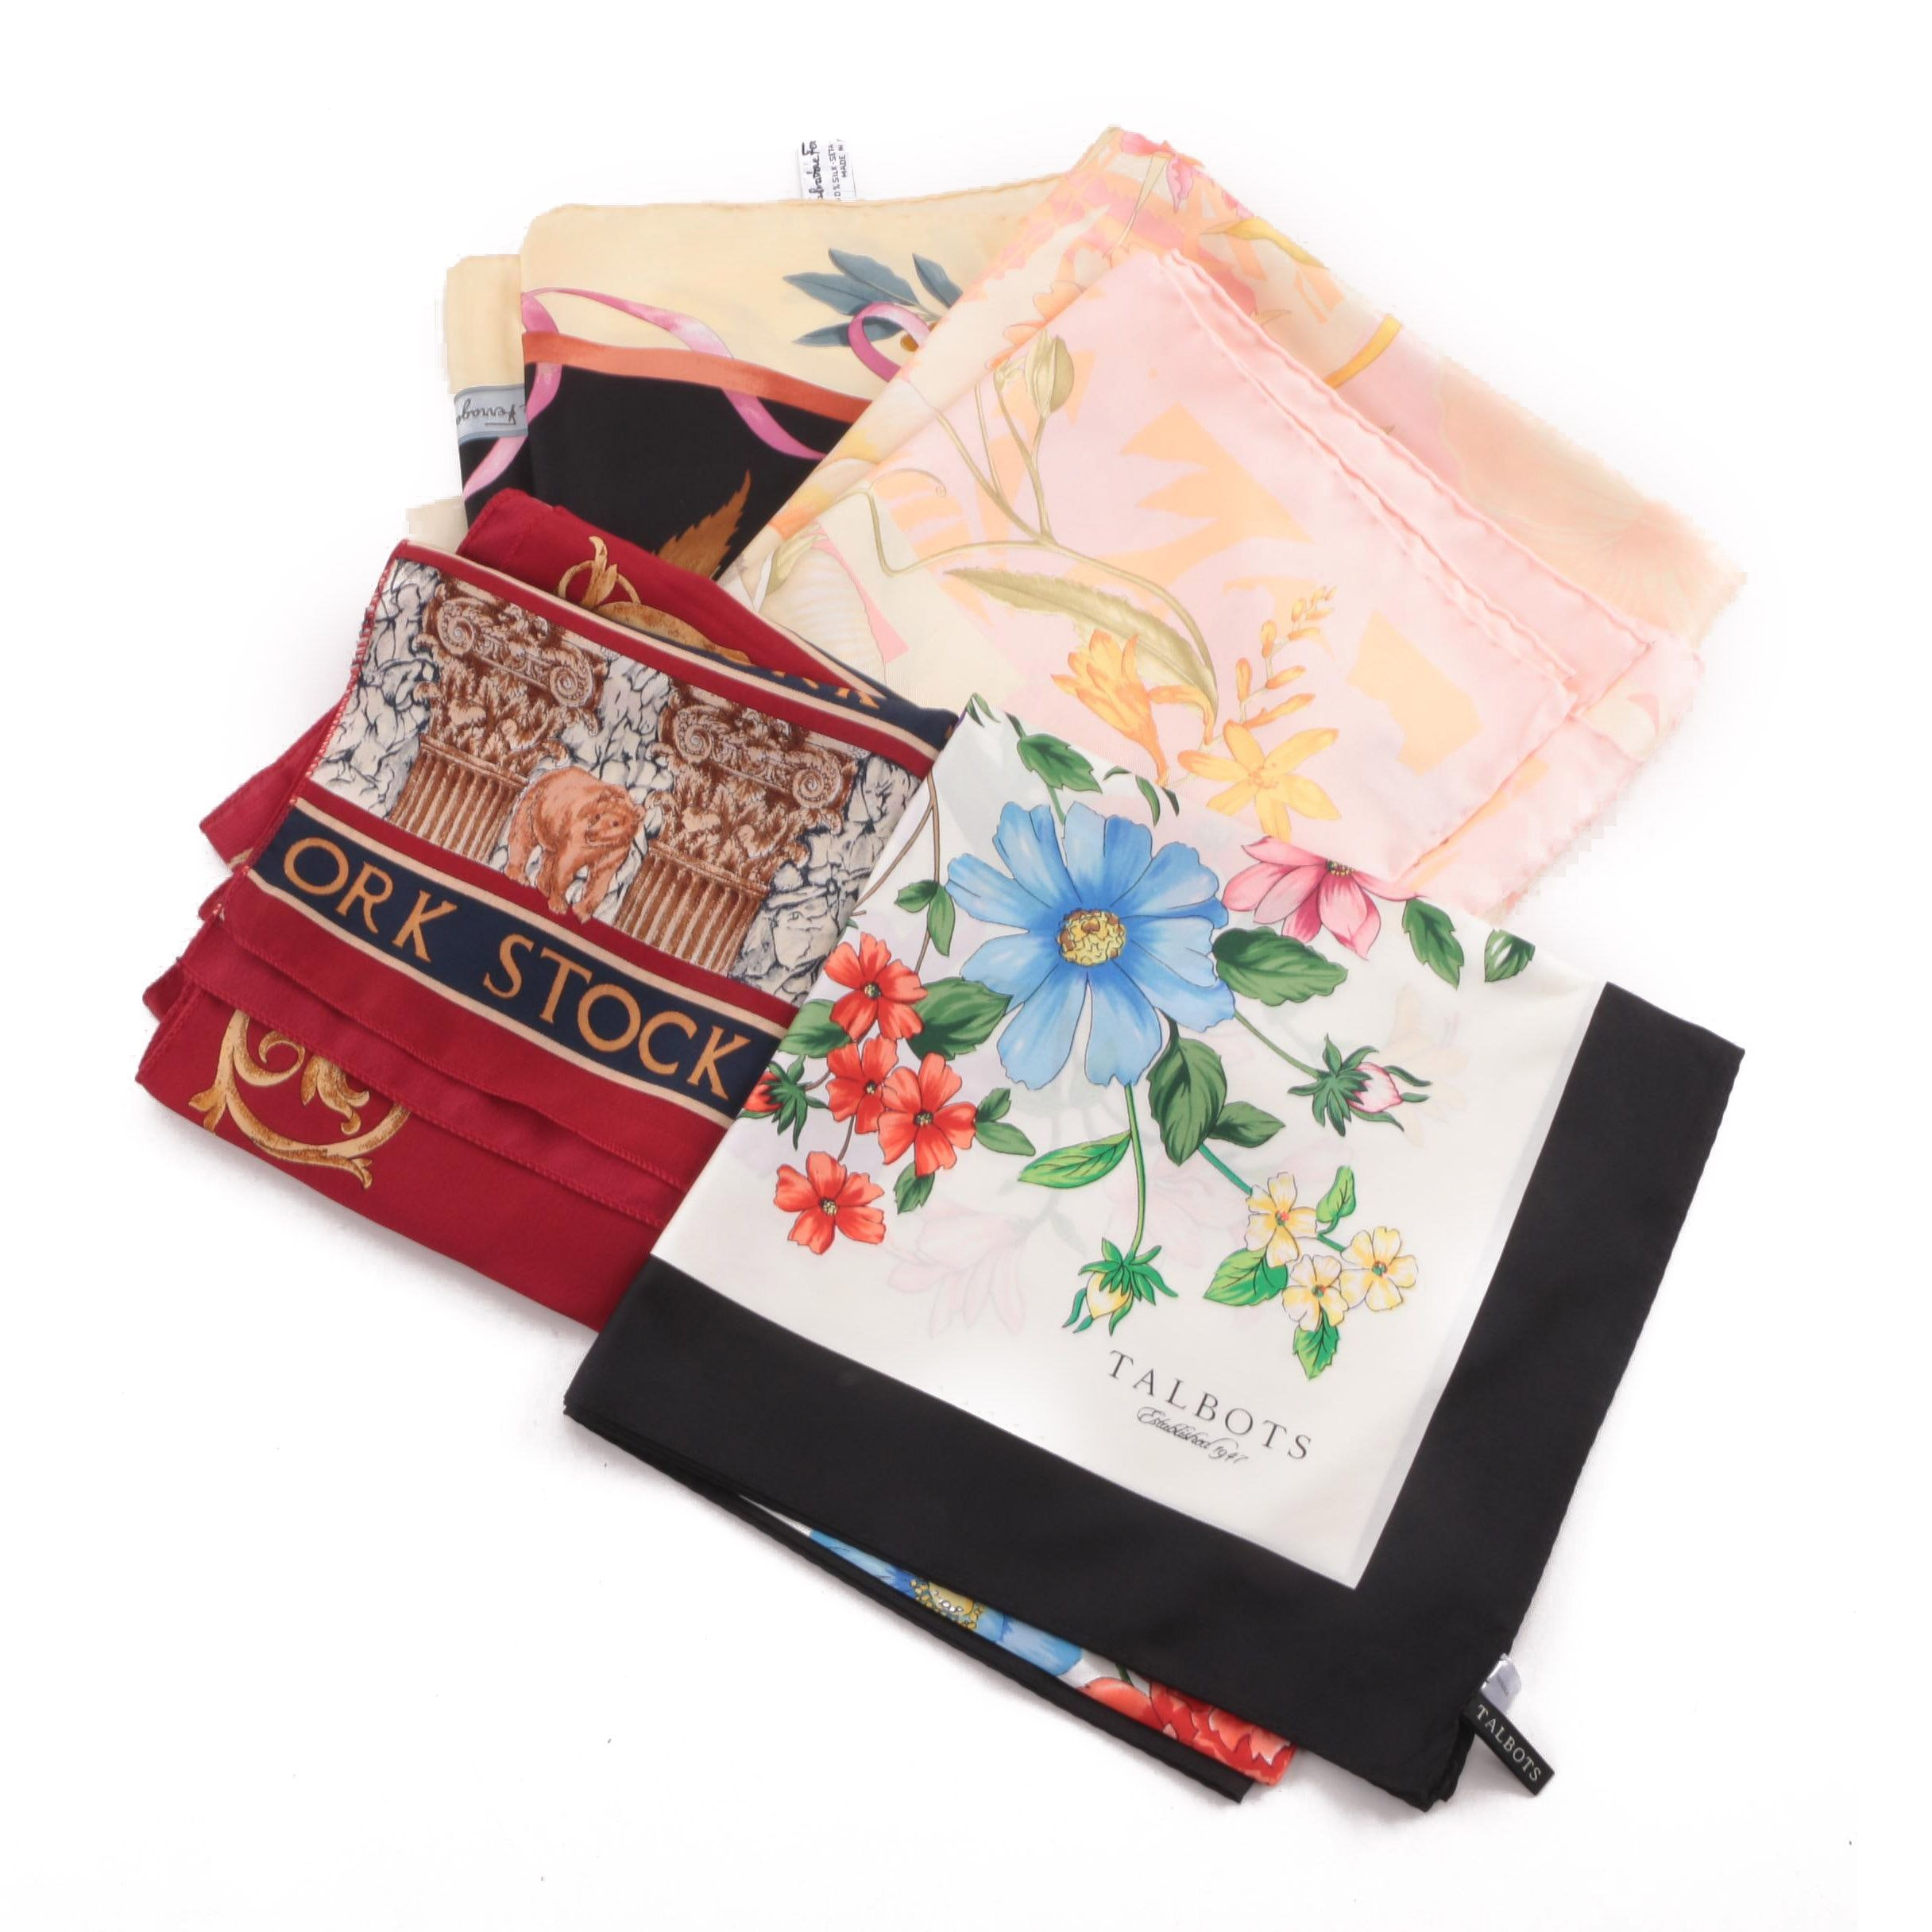 Salvatore Ferragamo, Talbots and Voslo Designs Silk Scarves